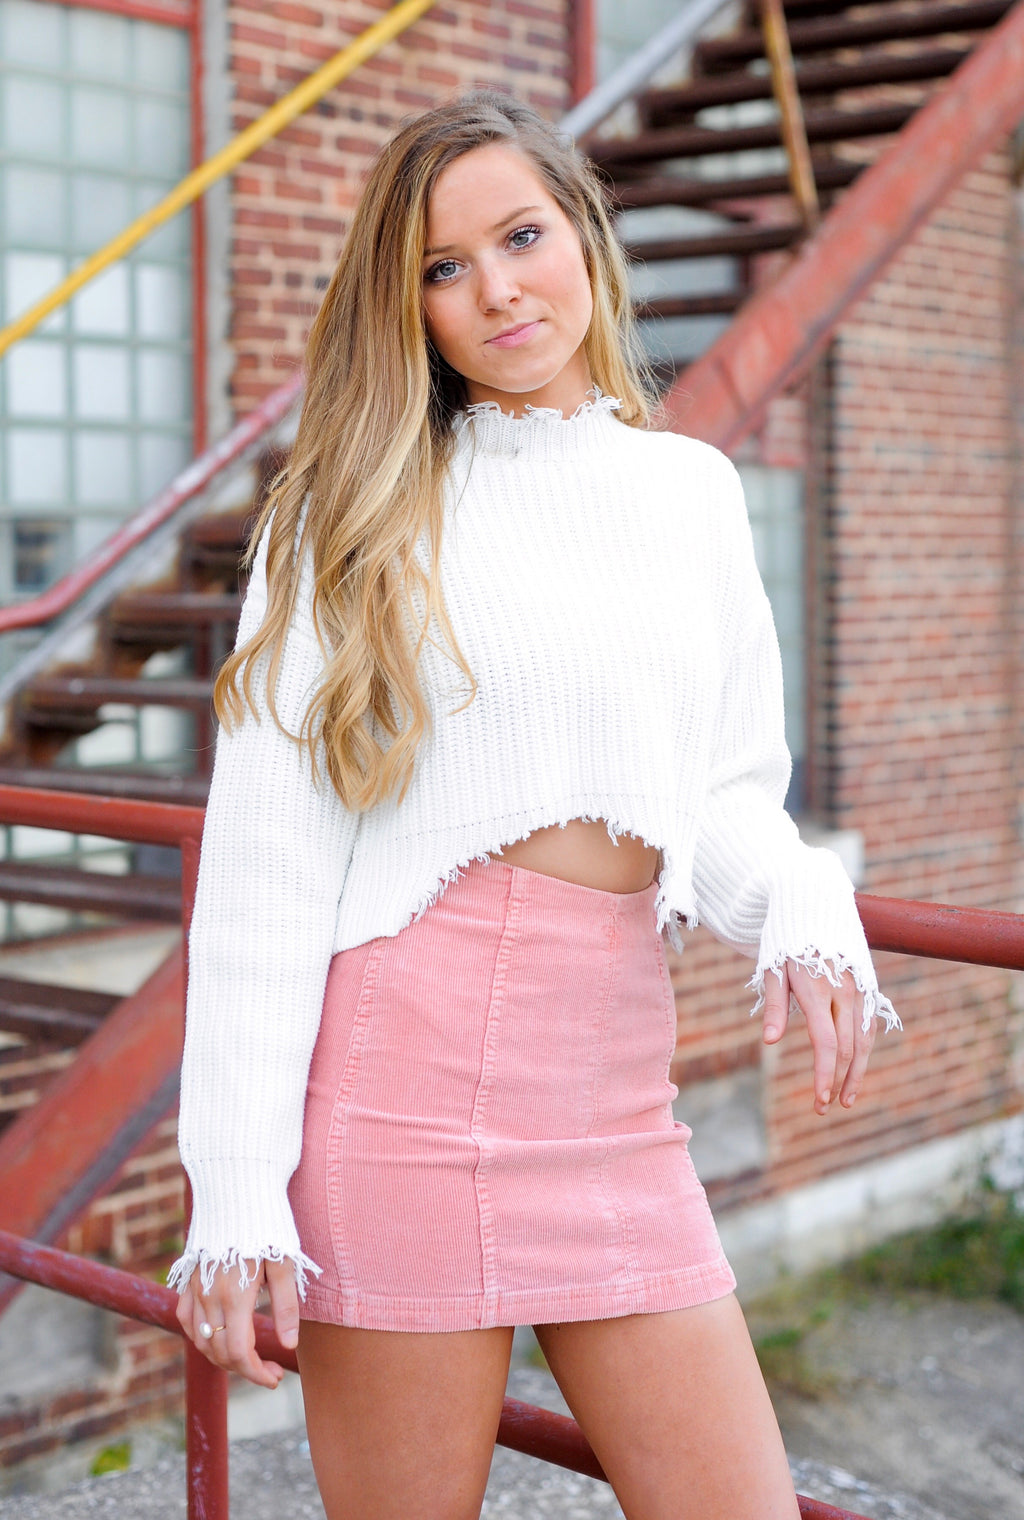 Soft Pink corduroy skirt with white crop top distressed sweater